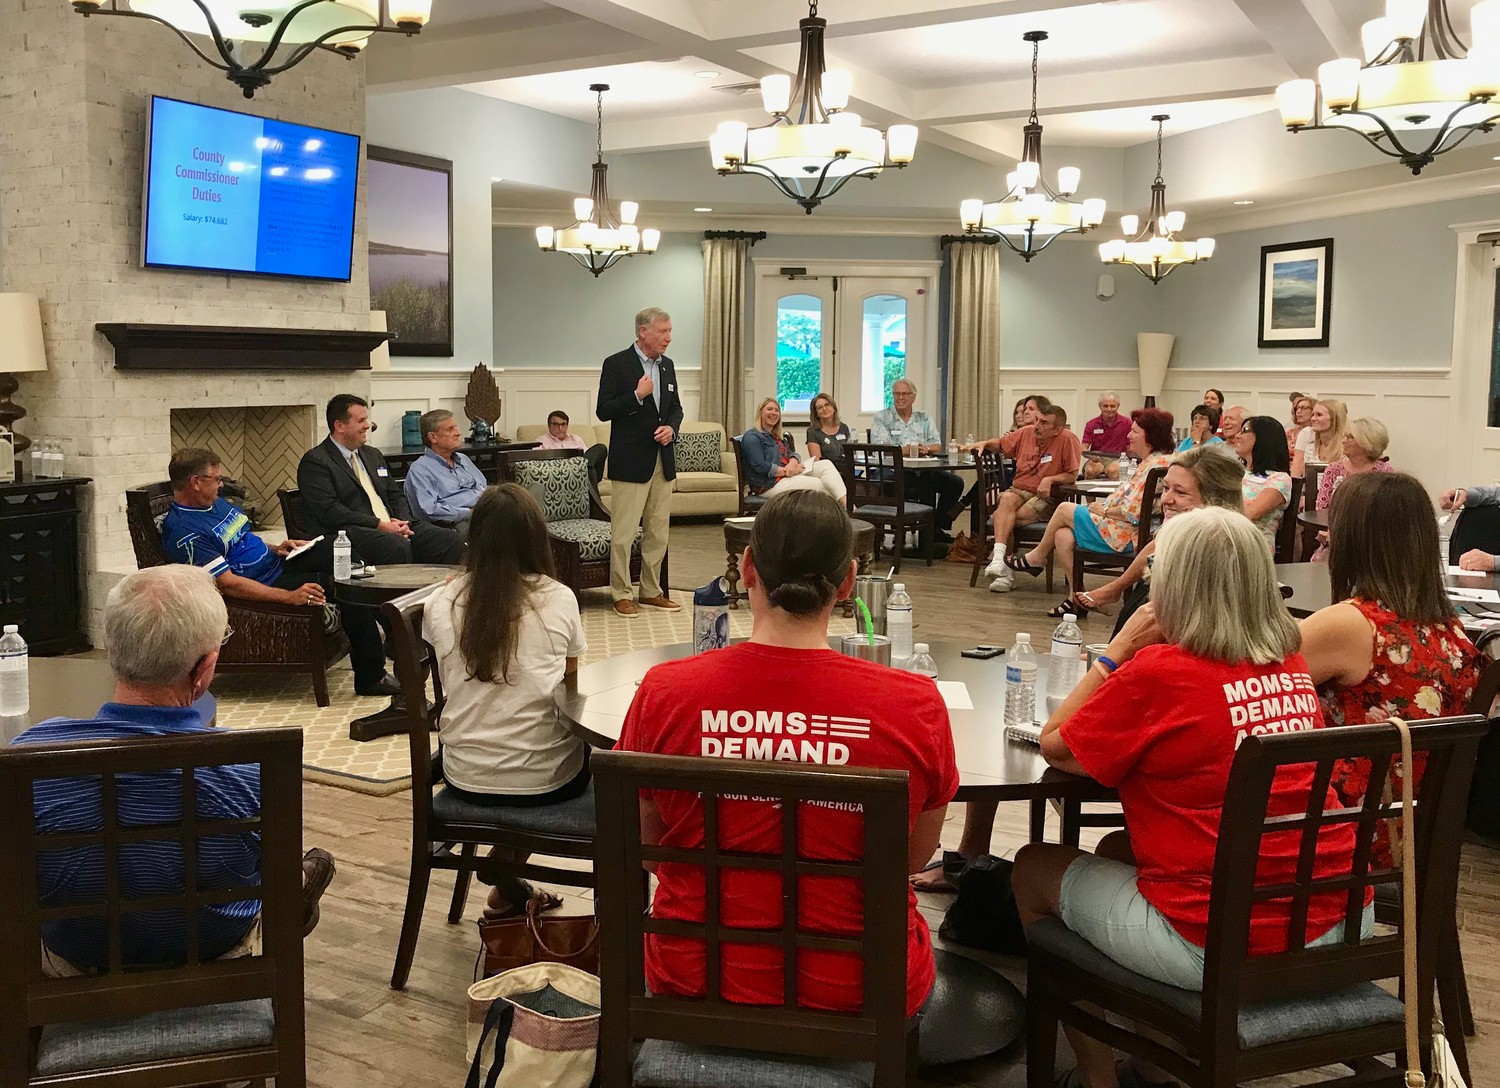 County Commission District 4 candidate Dick Williams addresses attendees of the Meet the Candidates event June 27 hosted by the St. Johns County chapter of Moms Demand Action for Gun Sense in America.